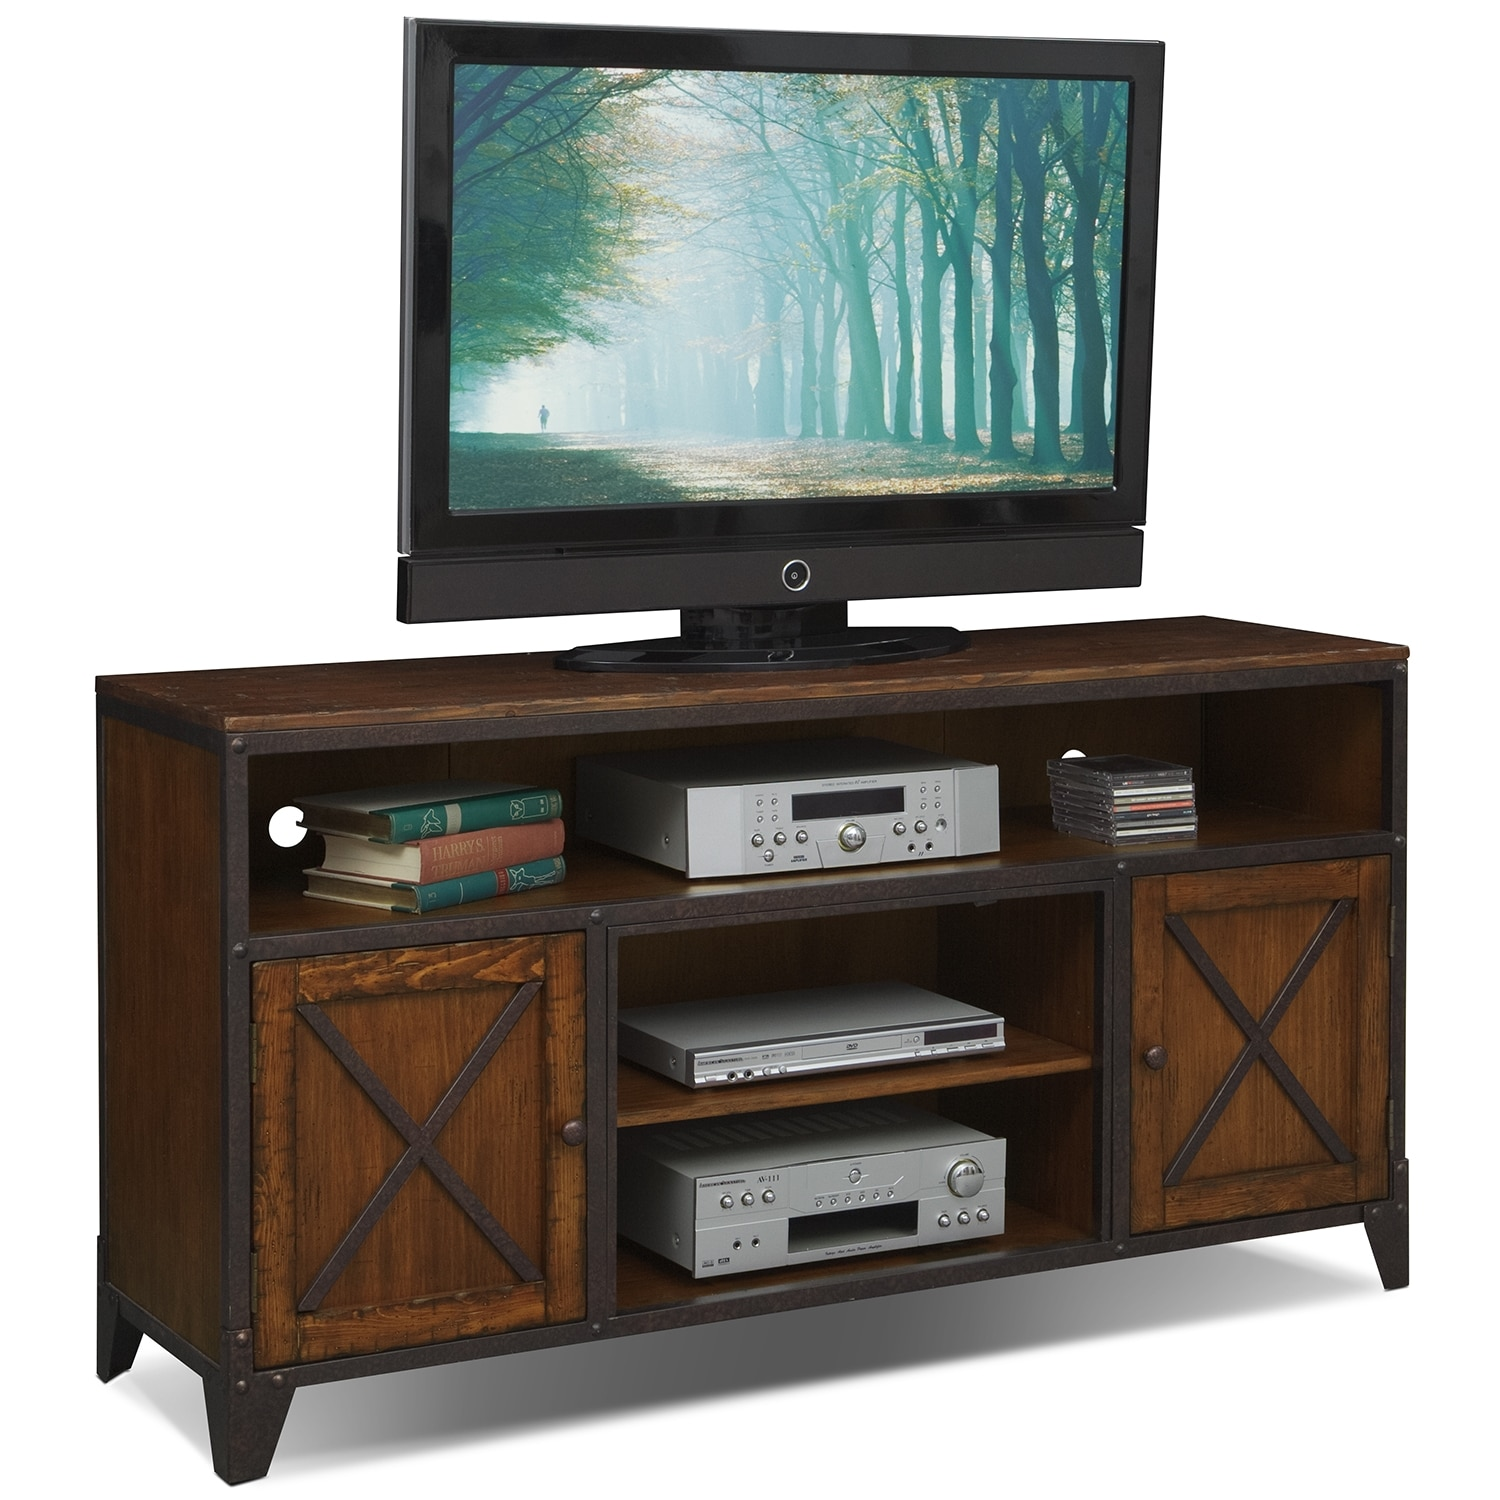 [Shortline TV Stand - Distressed Pine]